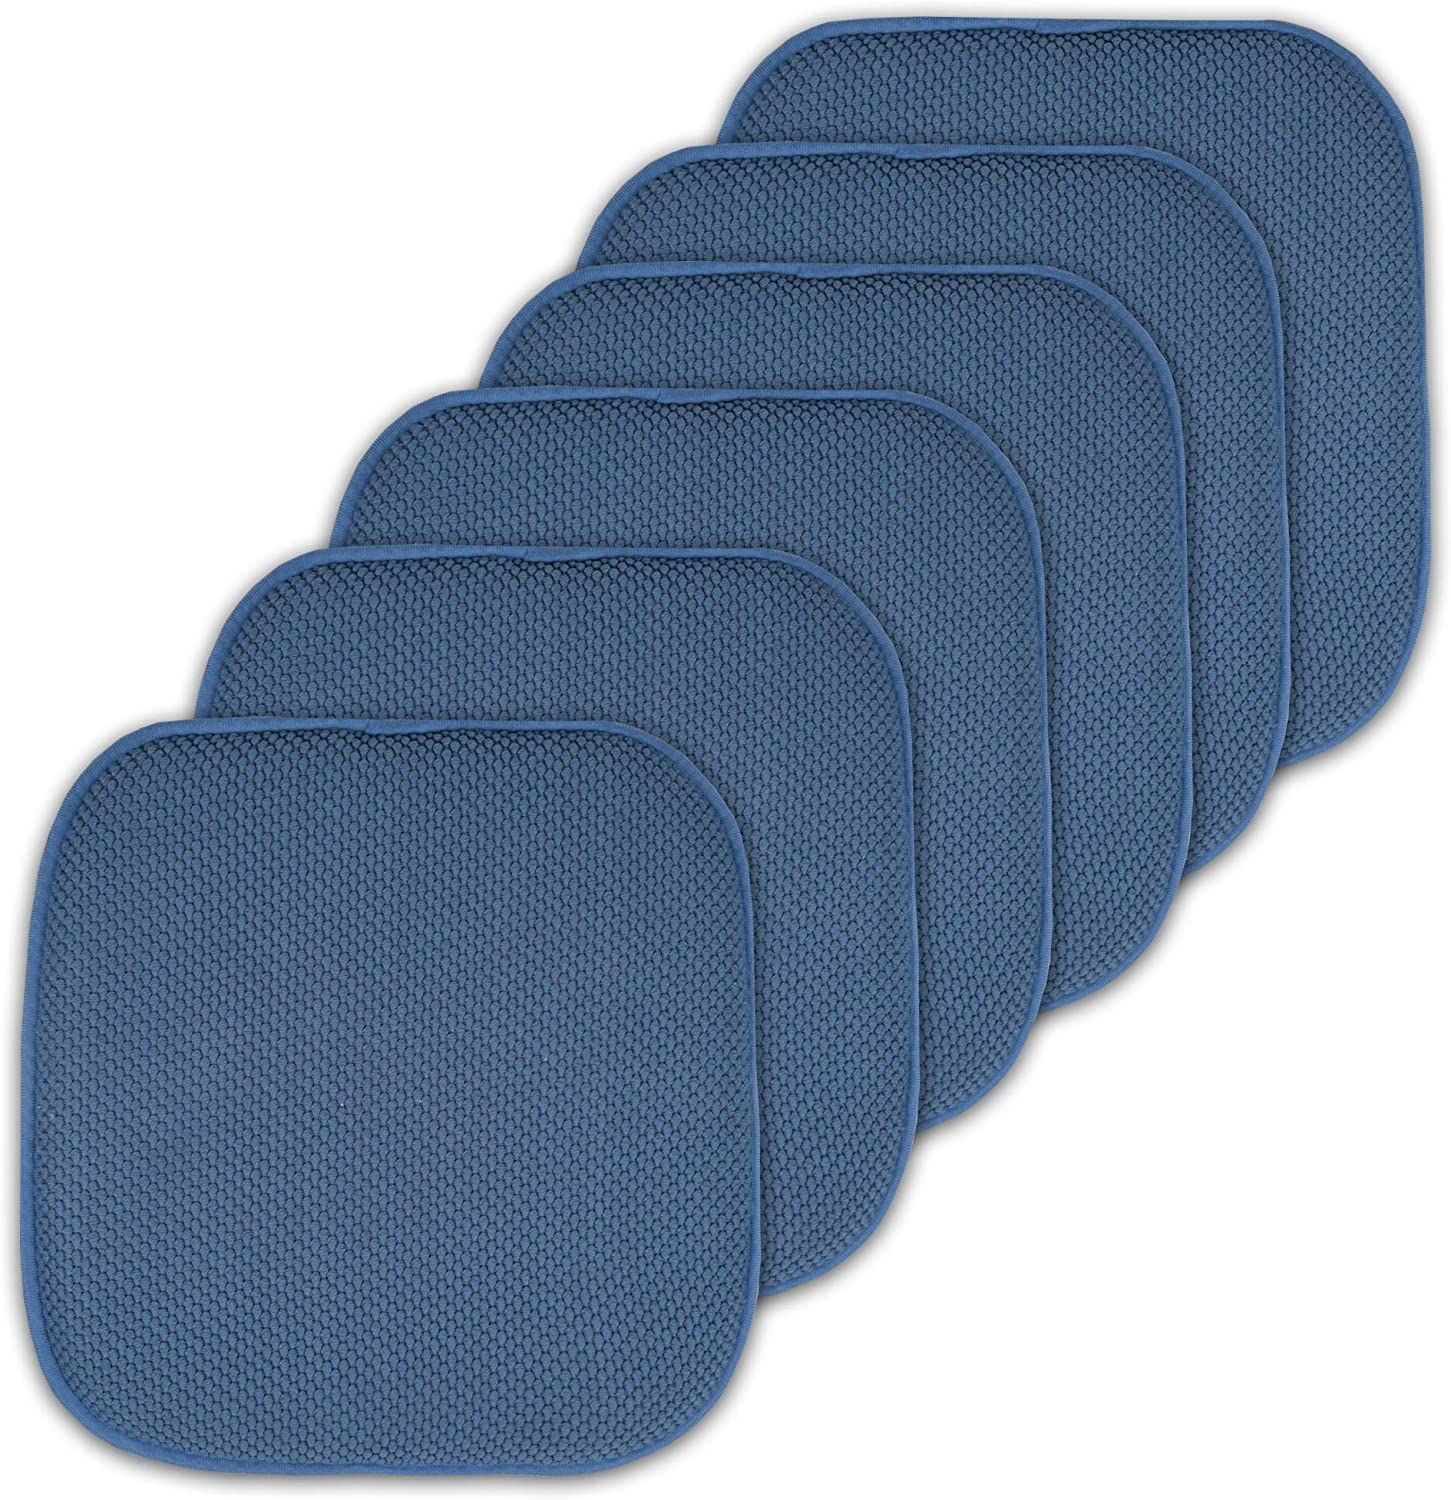 Sweet Home Collection Cushion Memory Foam Chair Pads Honeycomb Nonslip Back Seat Cover 16 x 16 6 Pack Blue